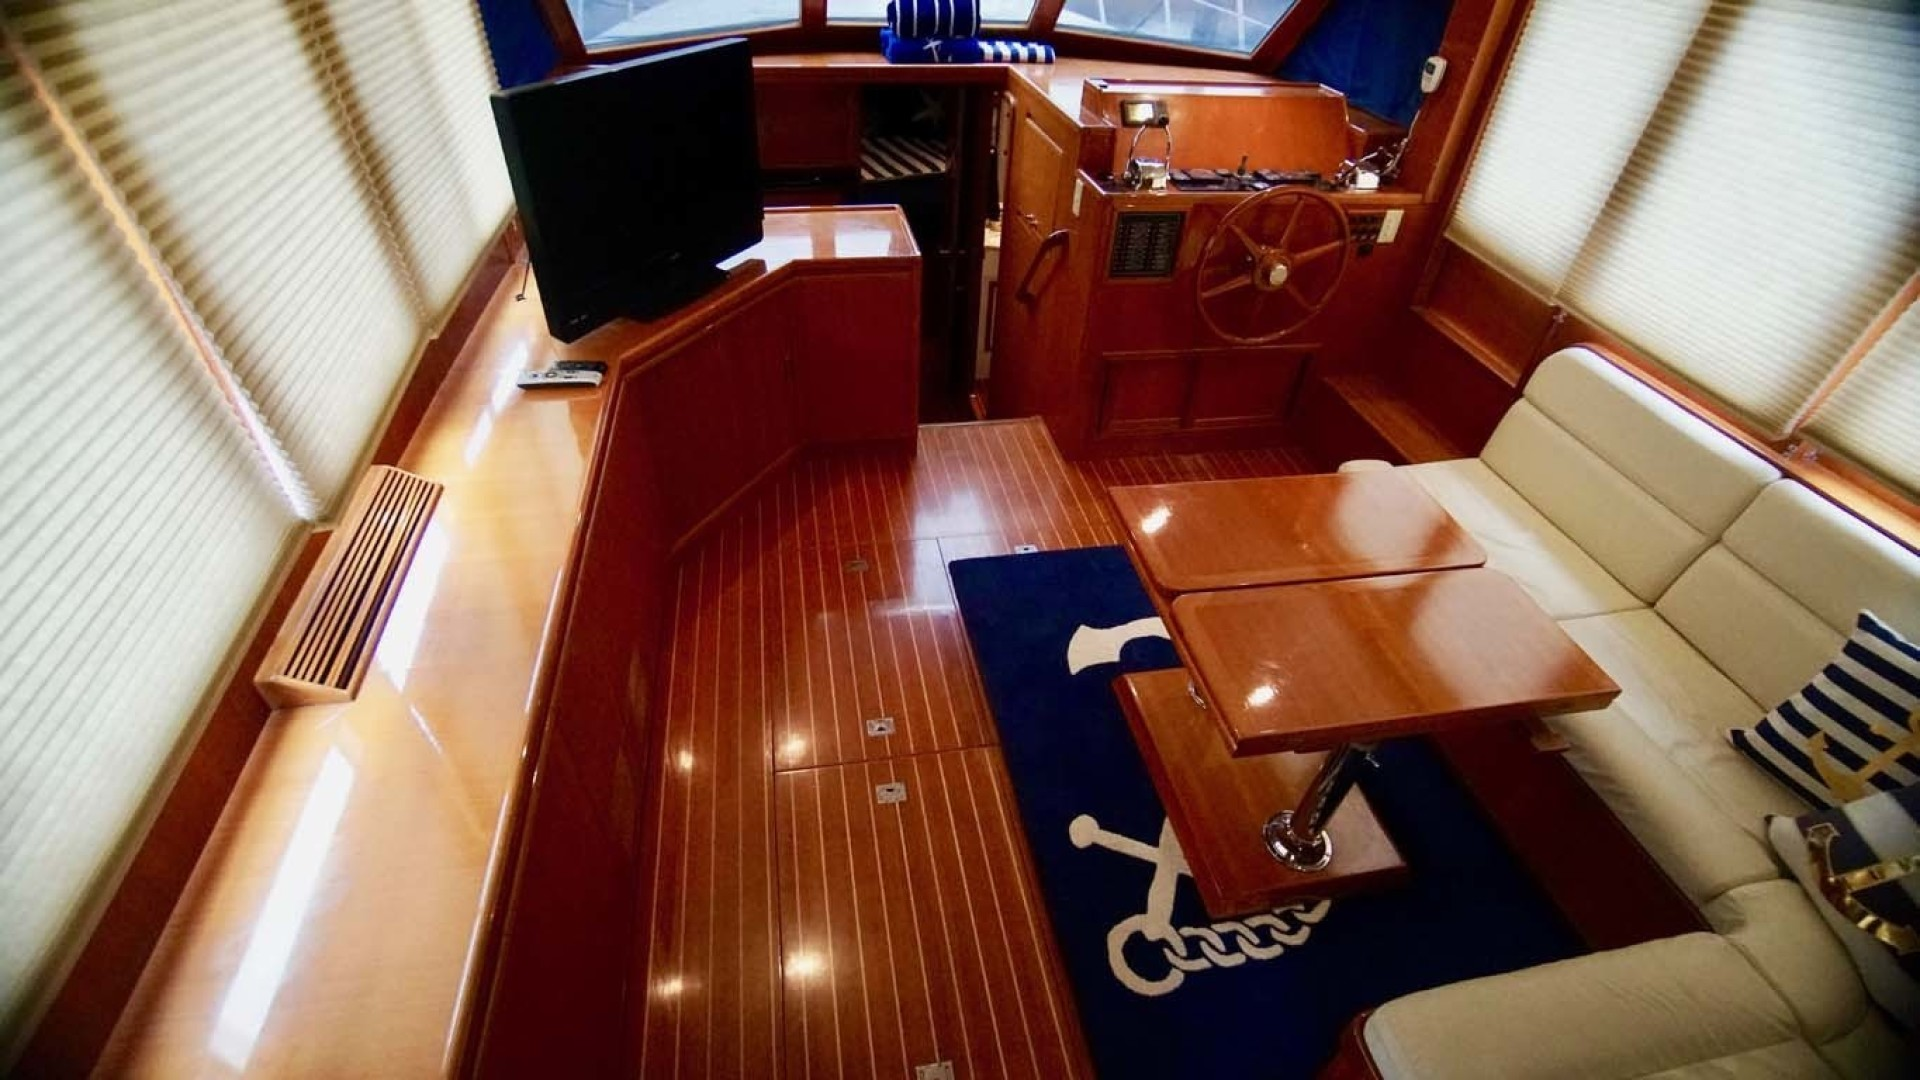 Novatec-48 Fast Trawler 2003-SINE DIE II Destin-Florida-United States-Salon Seating, Table And TV-1360612 | Thumbnail